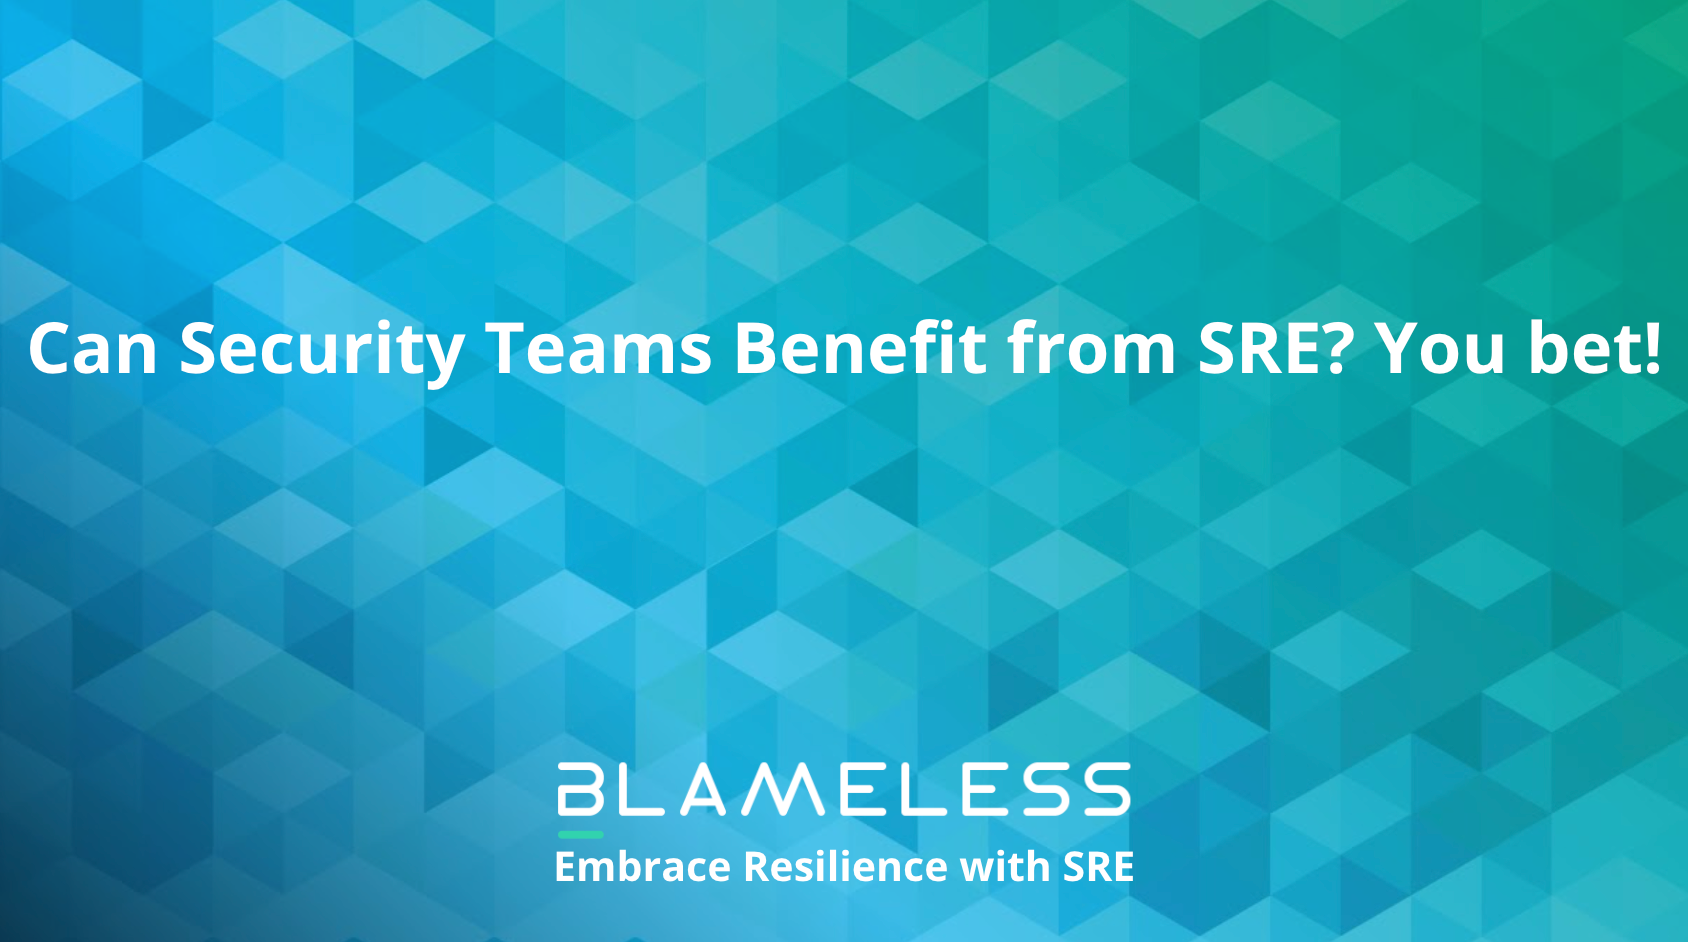 Can Security Teams Benefit from SRE? You bet!